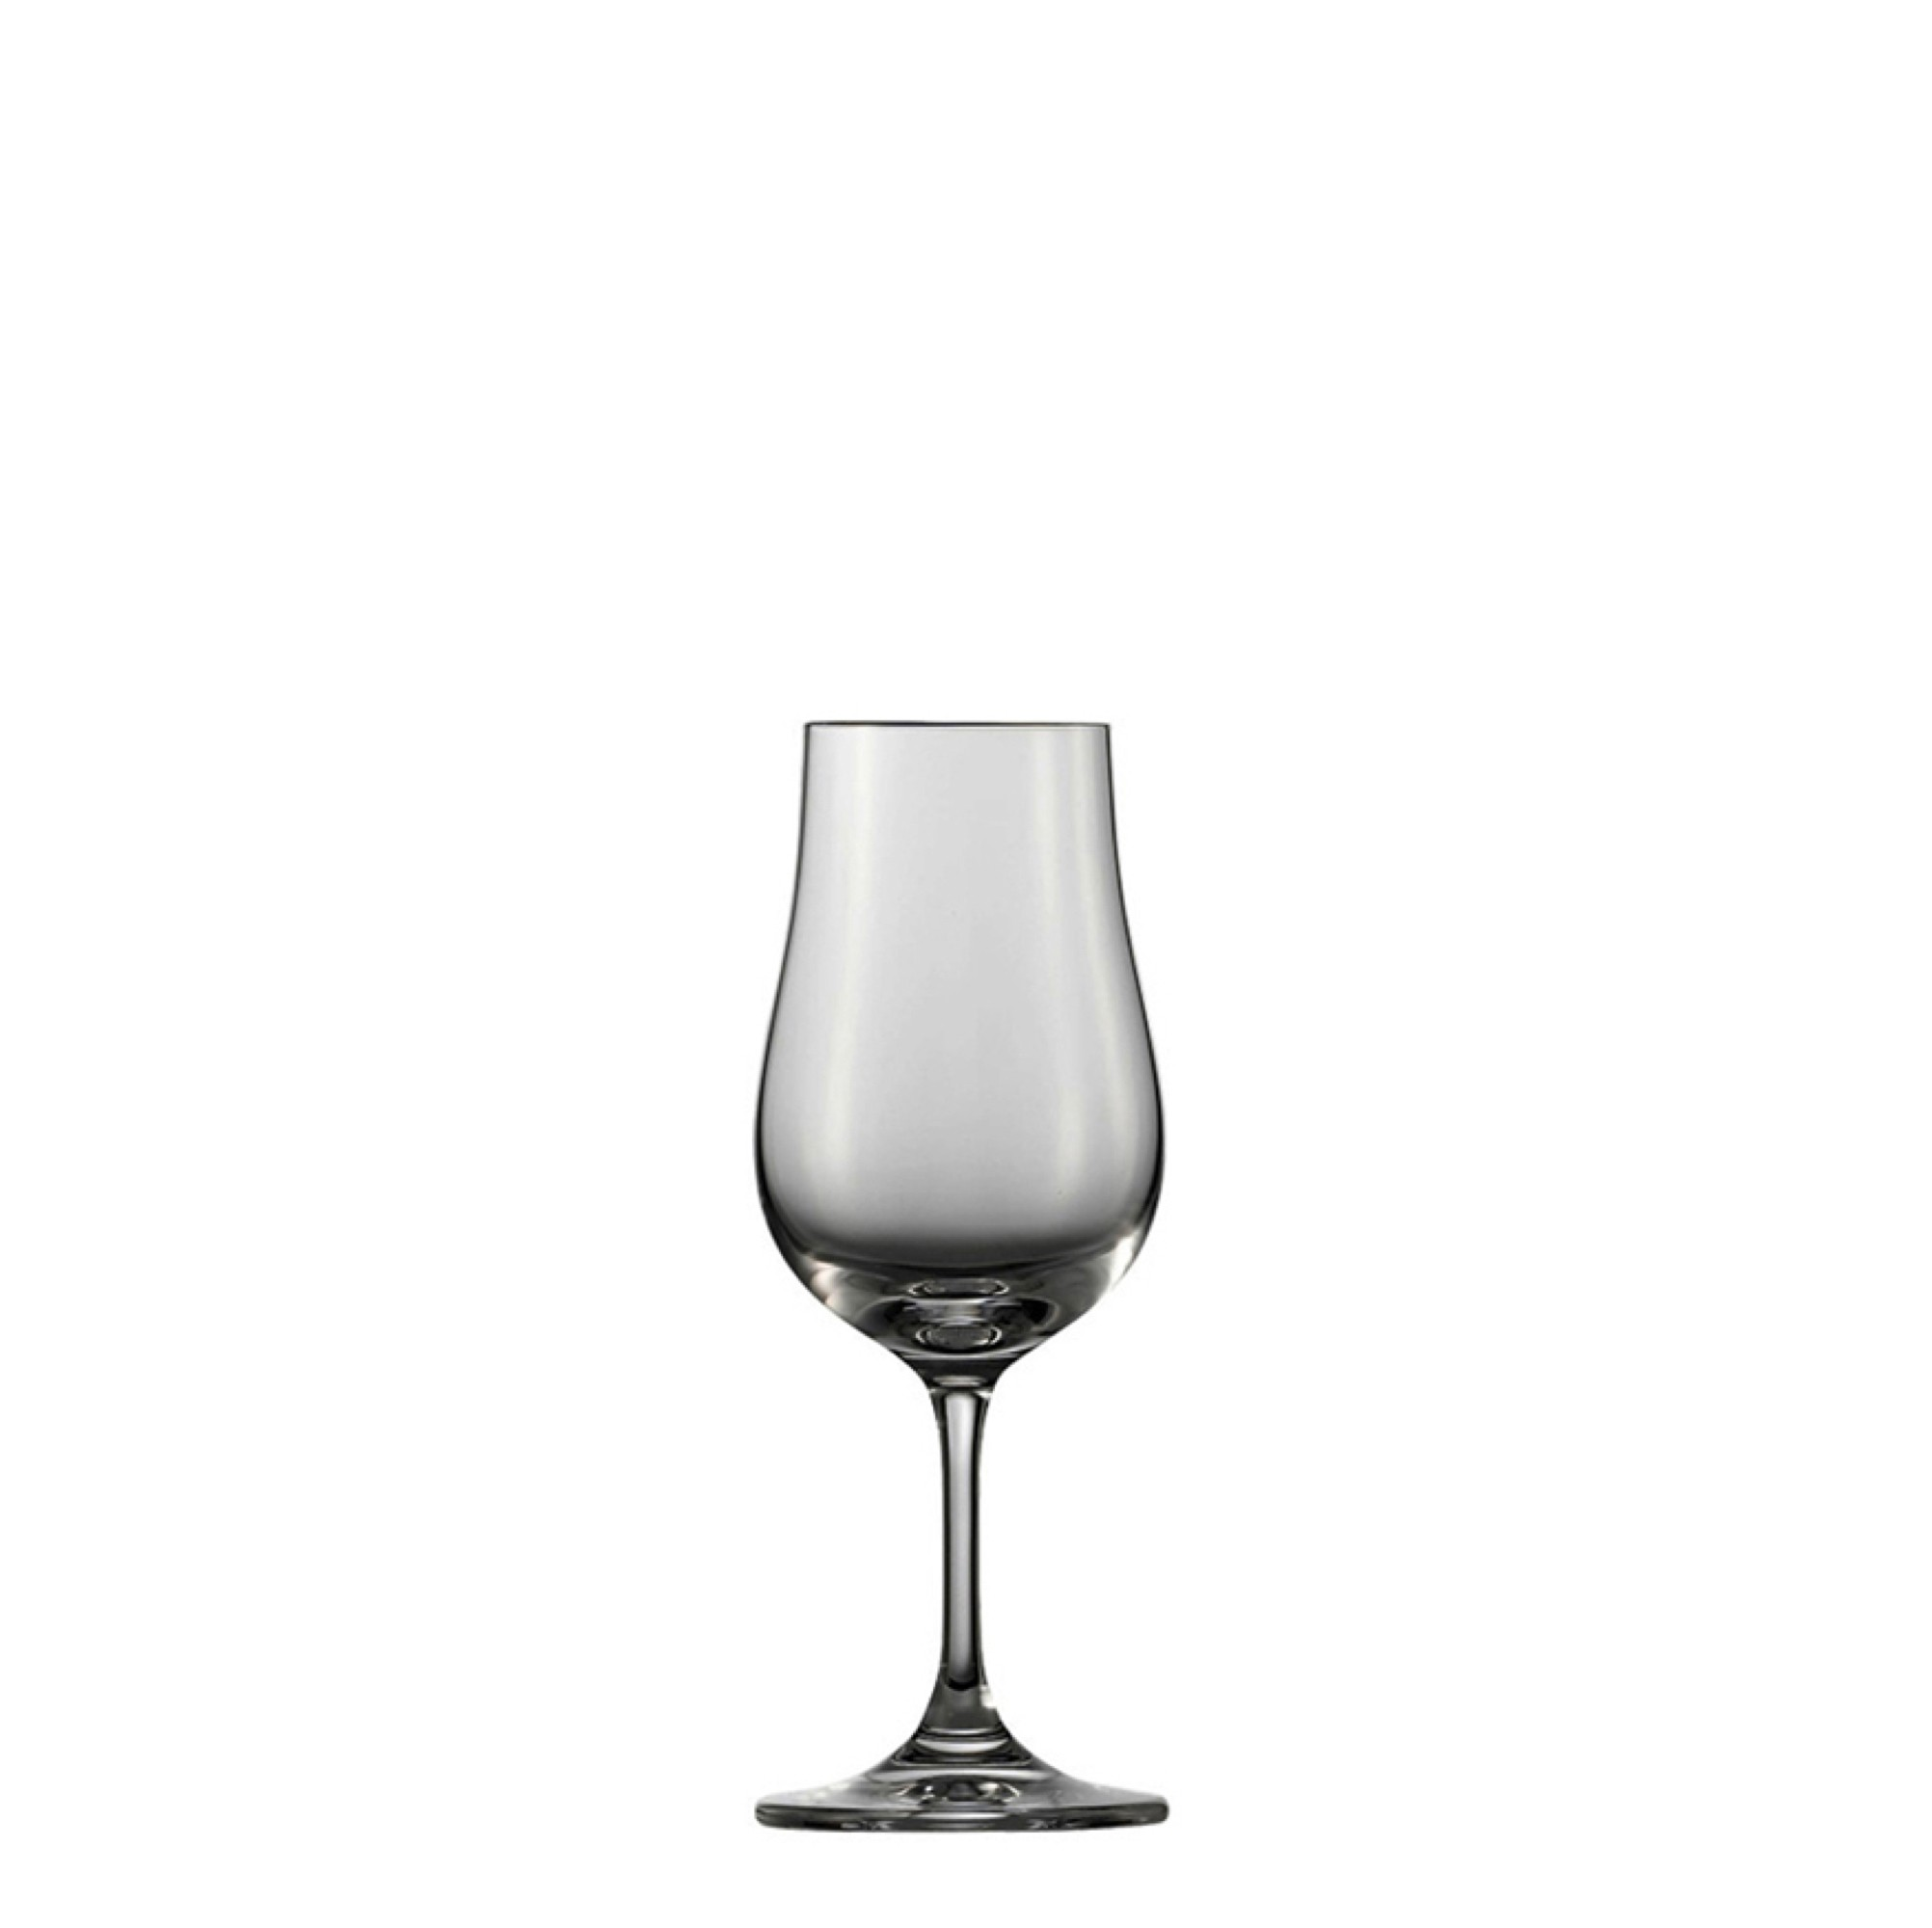 bar special nosing glass whiskey 17 set of 6 bestwineglass. Black Bedroom Furniture Sets. Home Design Ideas